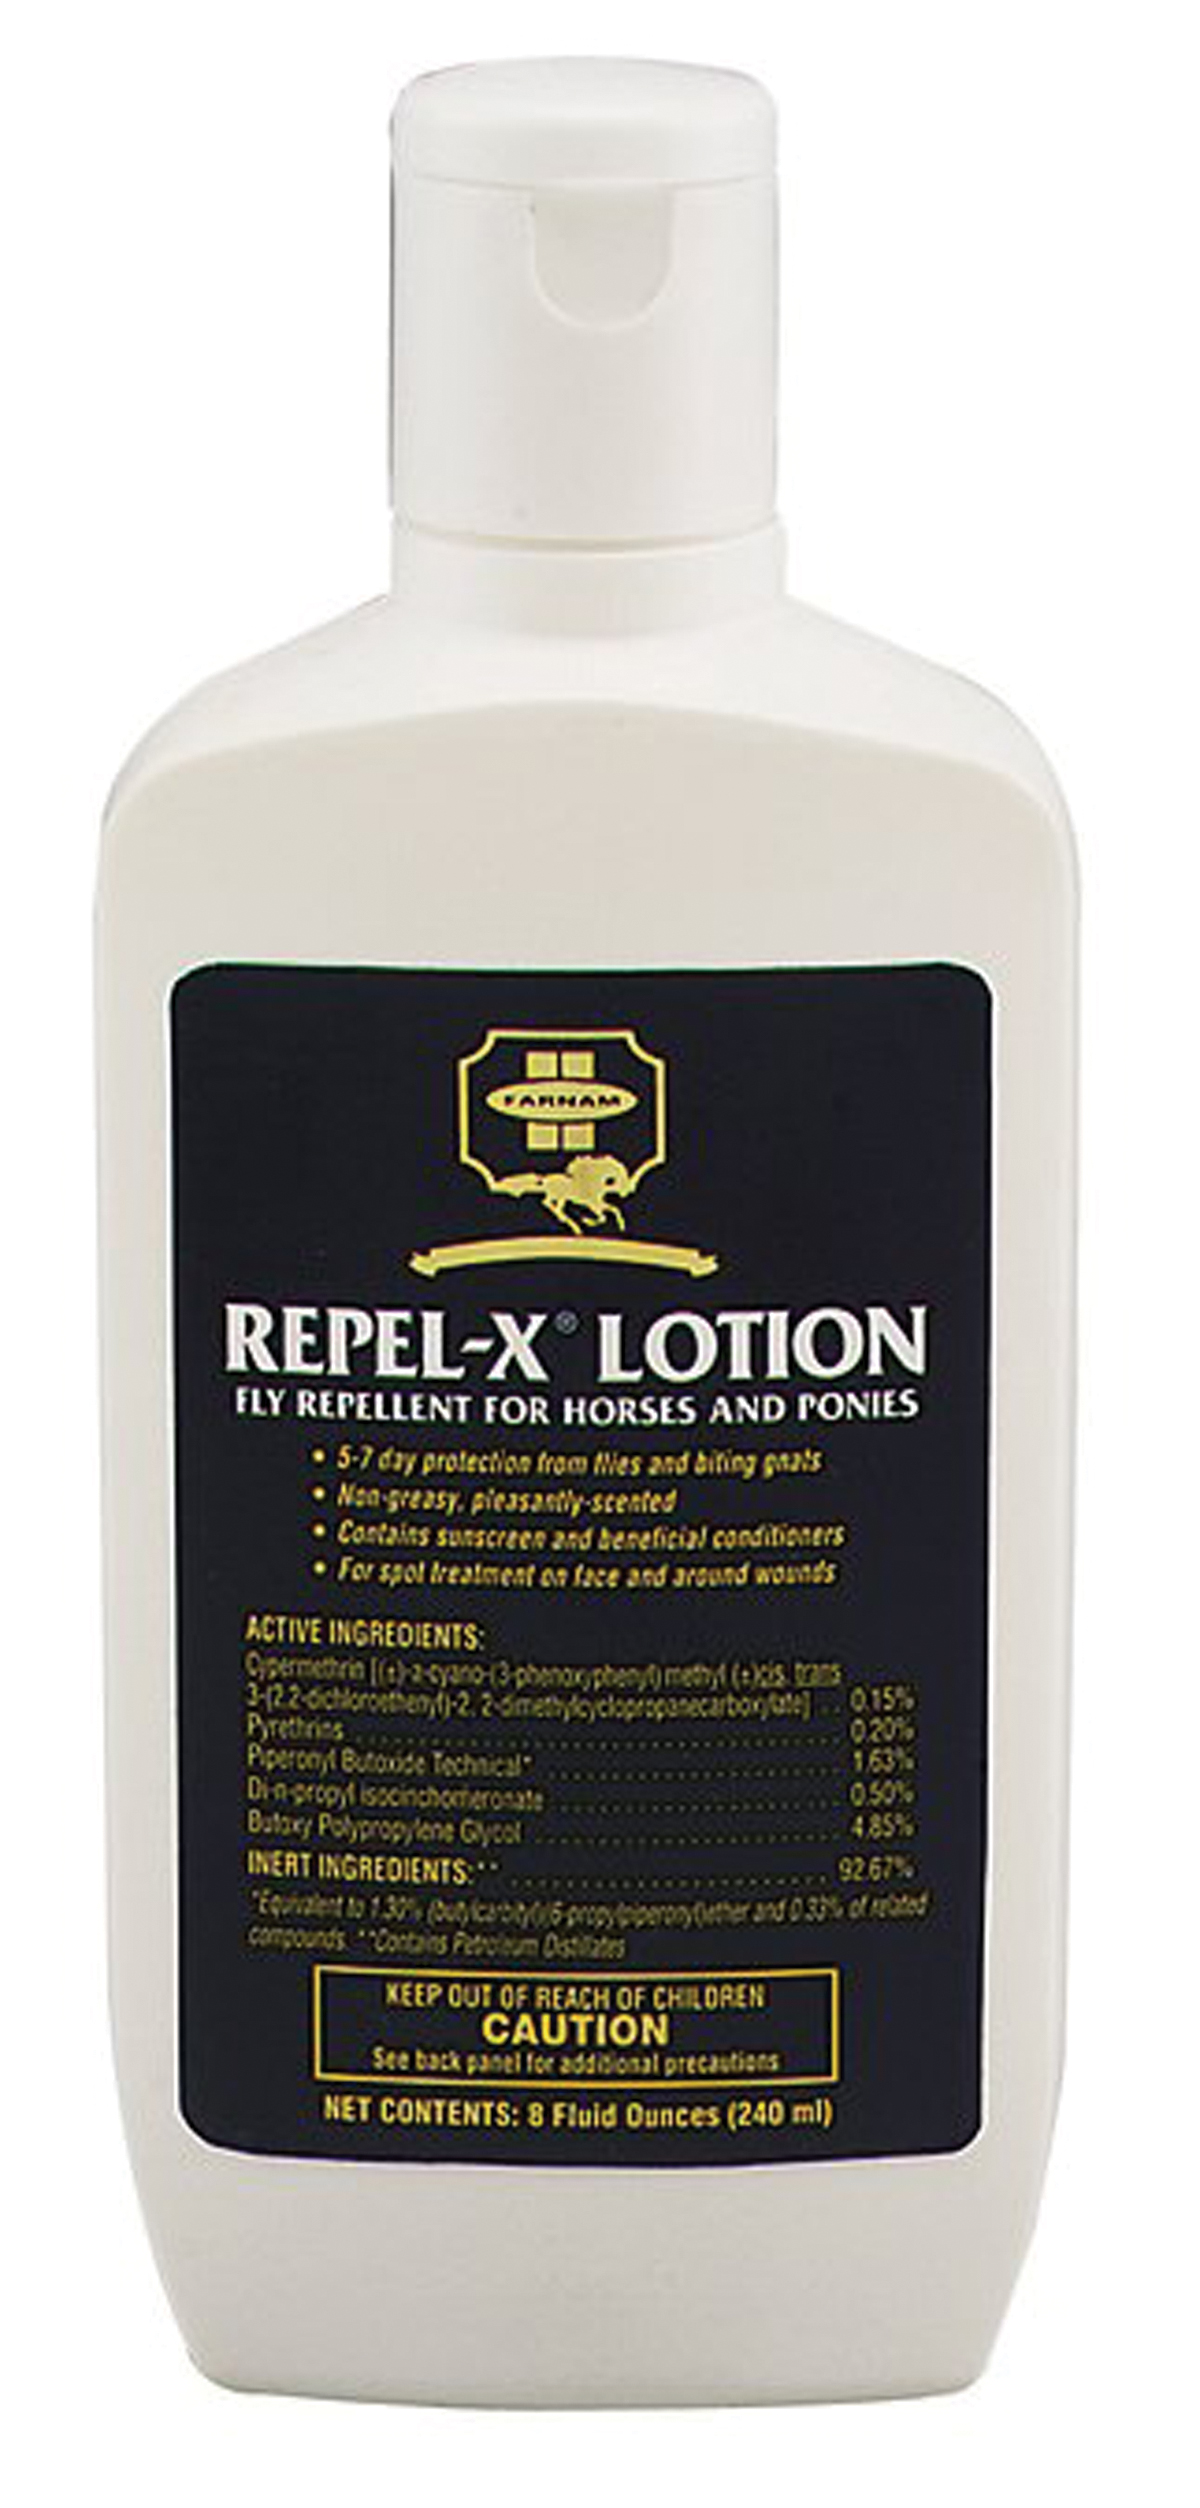 Repel-X Lotion Fly Repellent